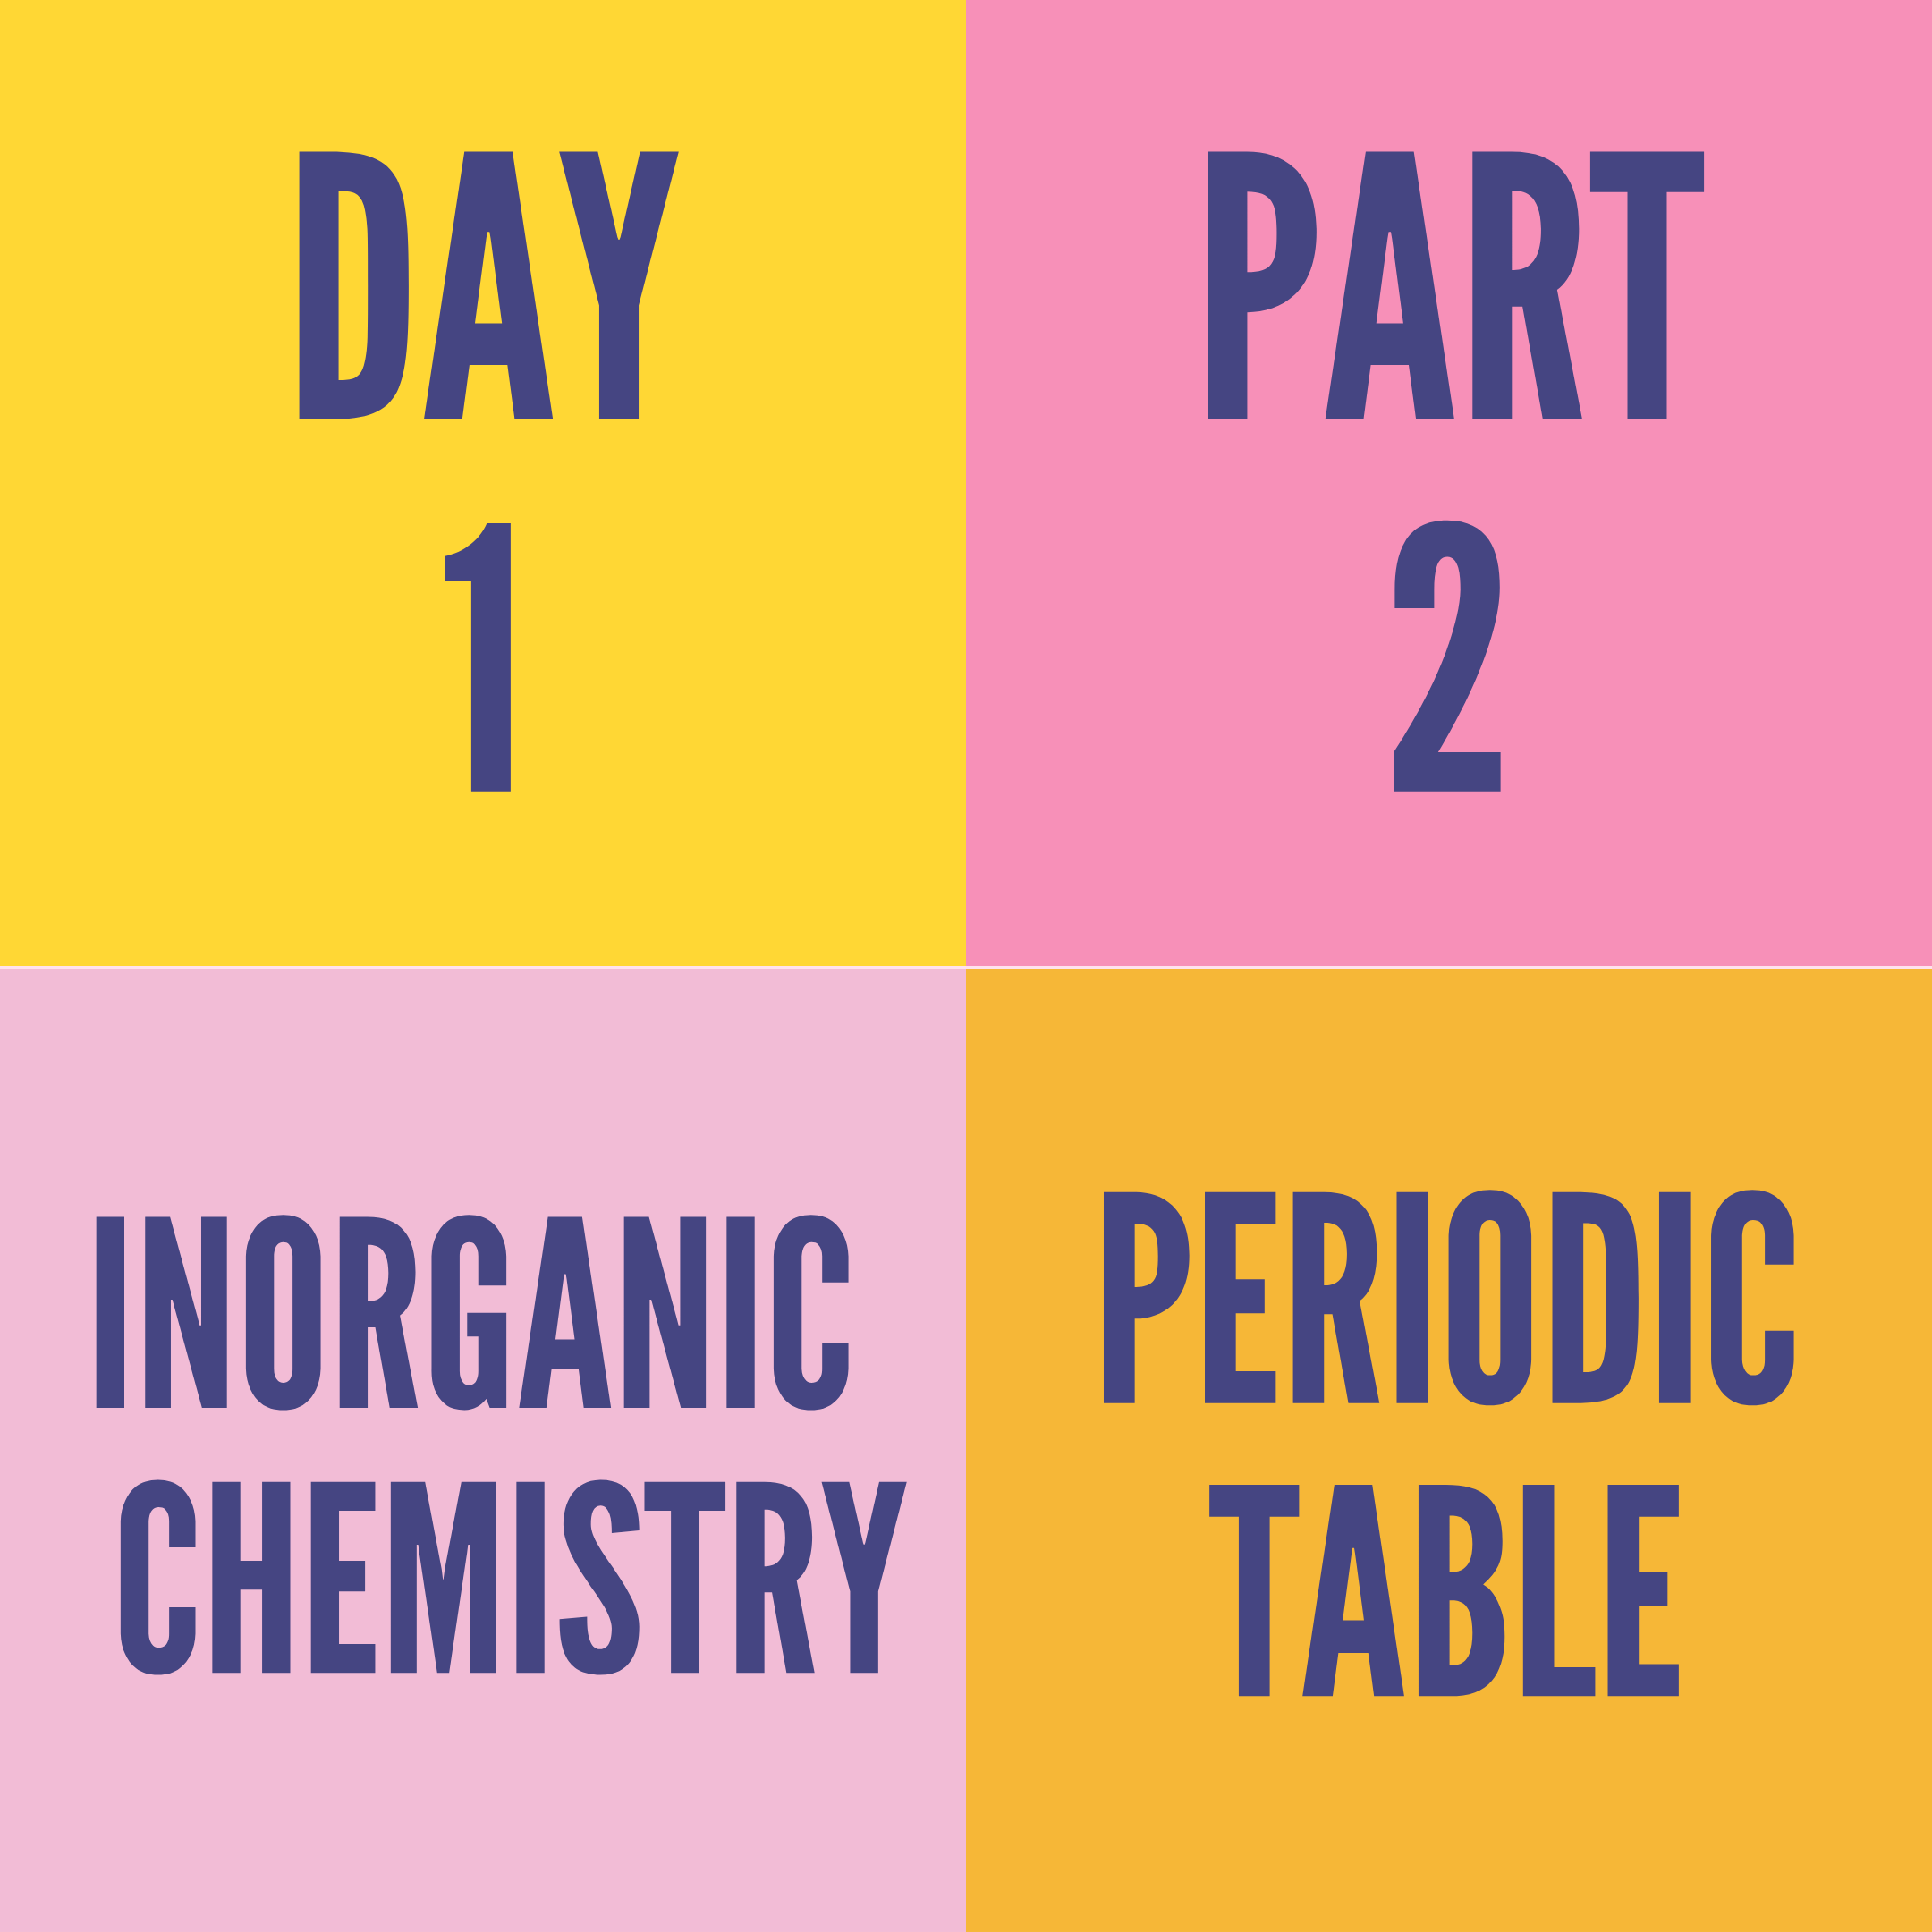 DAY-1 PART-2 PERIODIC TABLE